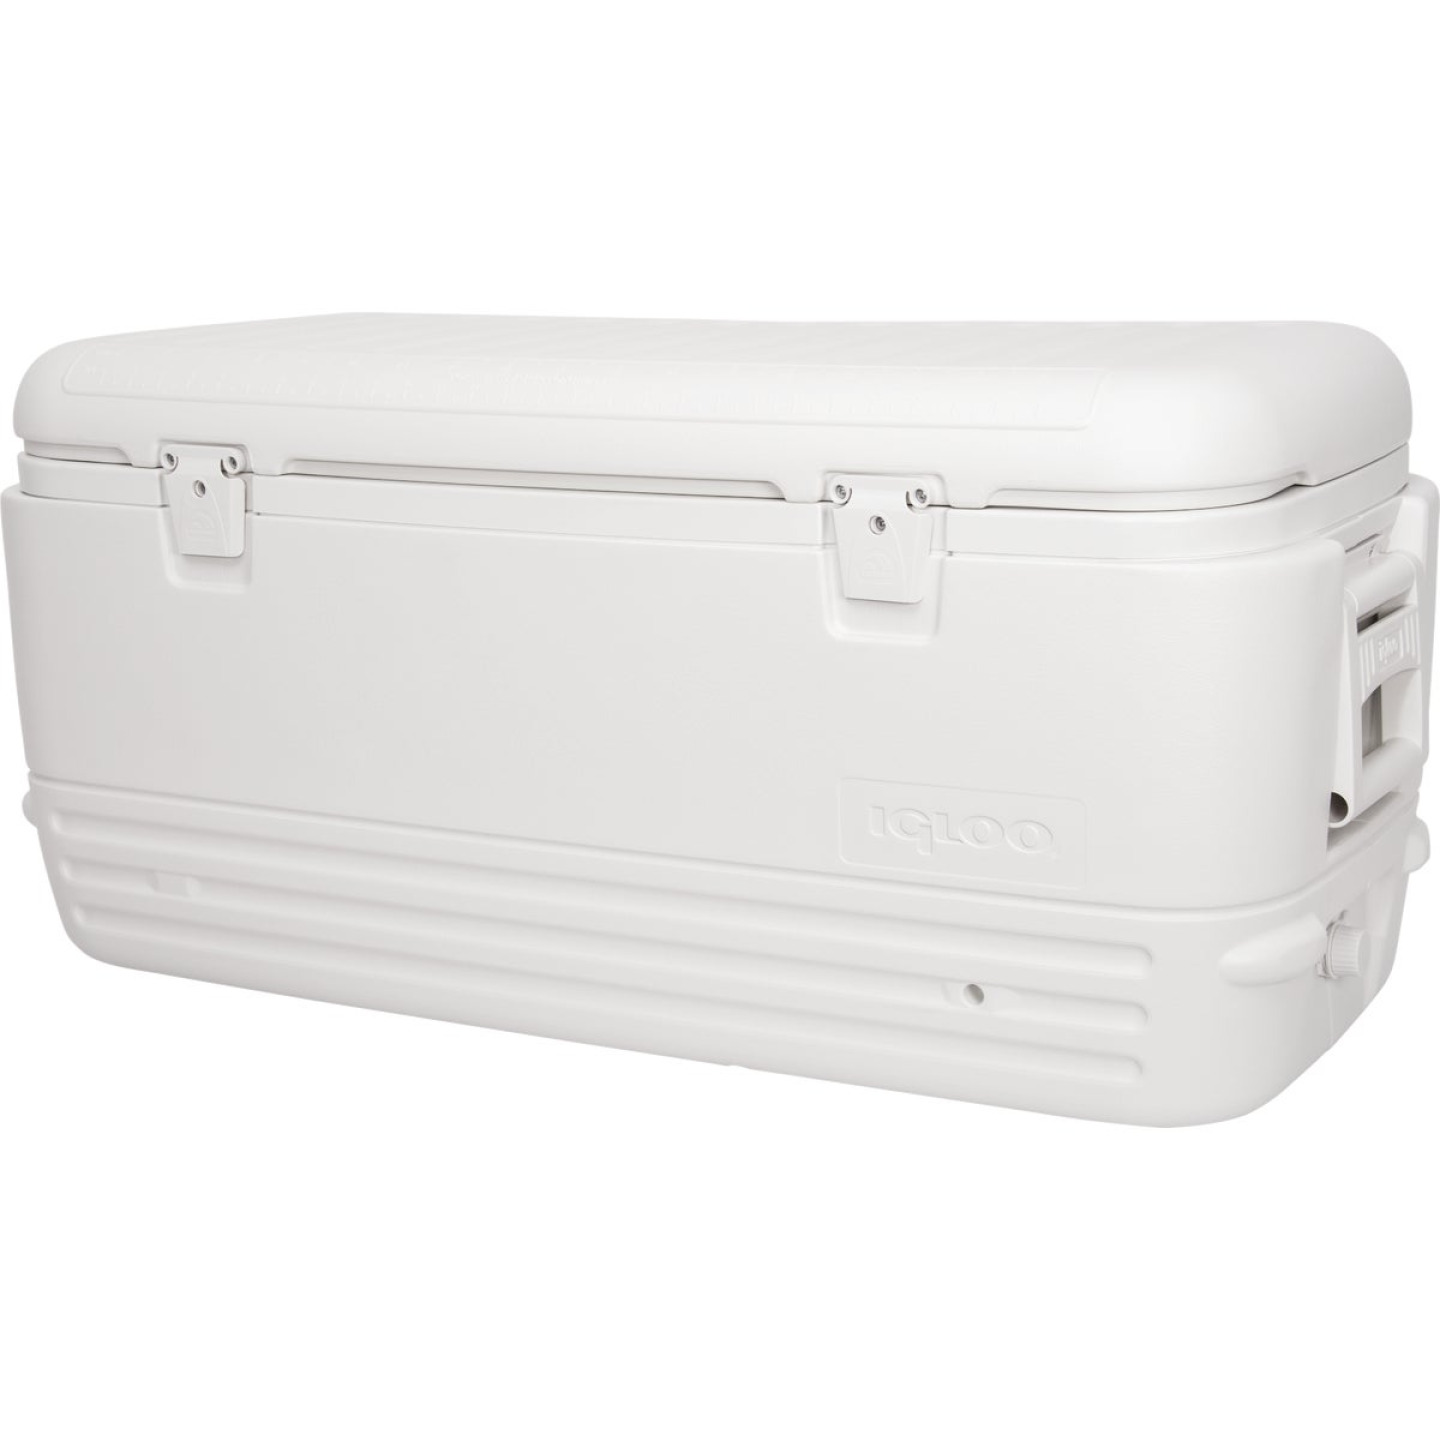 Igloo Polar 120 Qt. Cooler, White Image 1